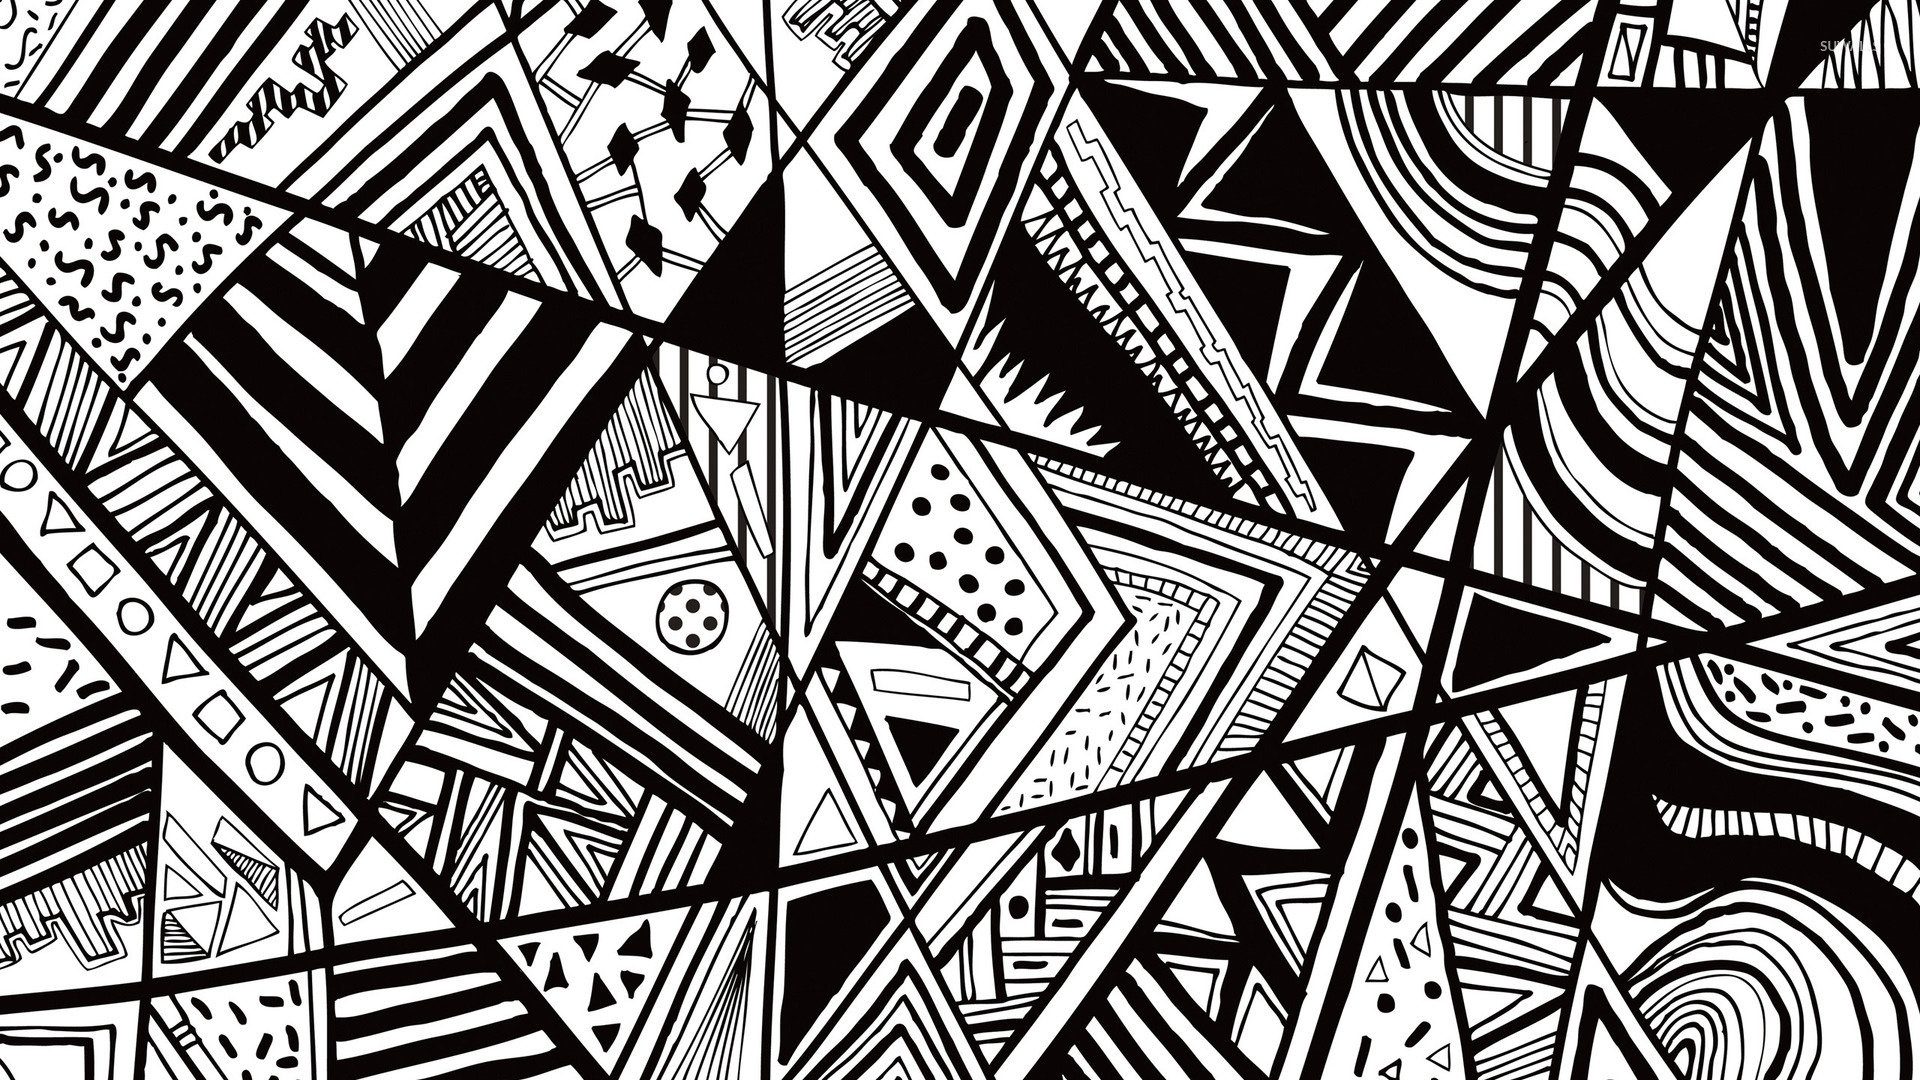 Black and white doodle wallpaper vector wallpapers 23874 for Line drawing wallpaper